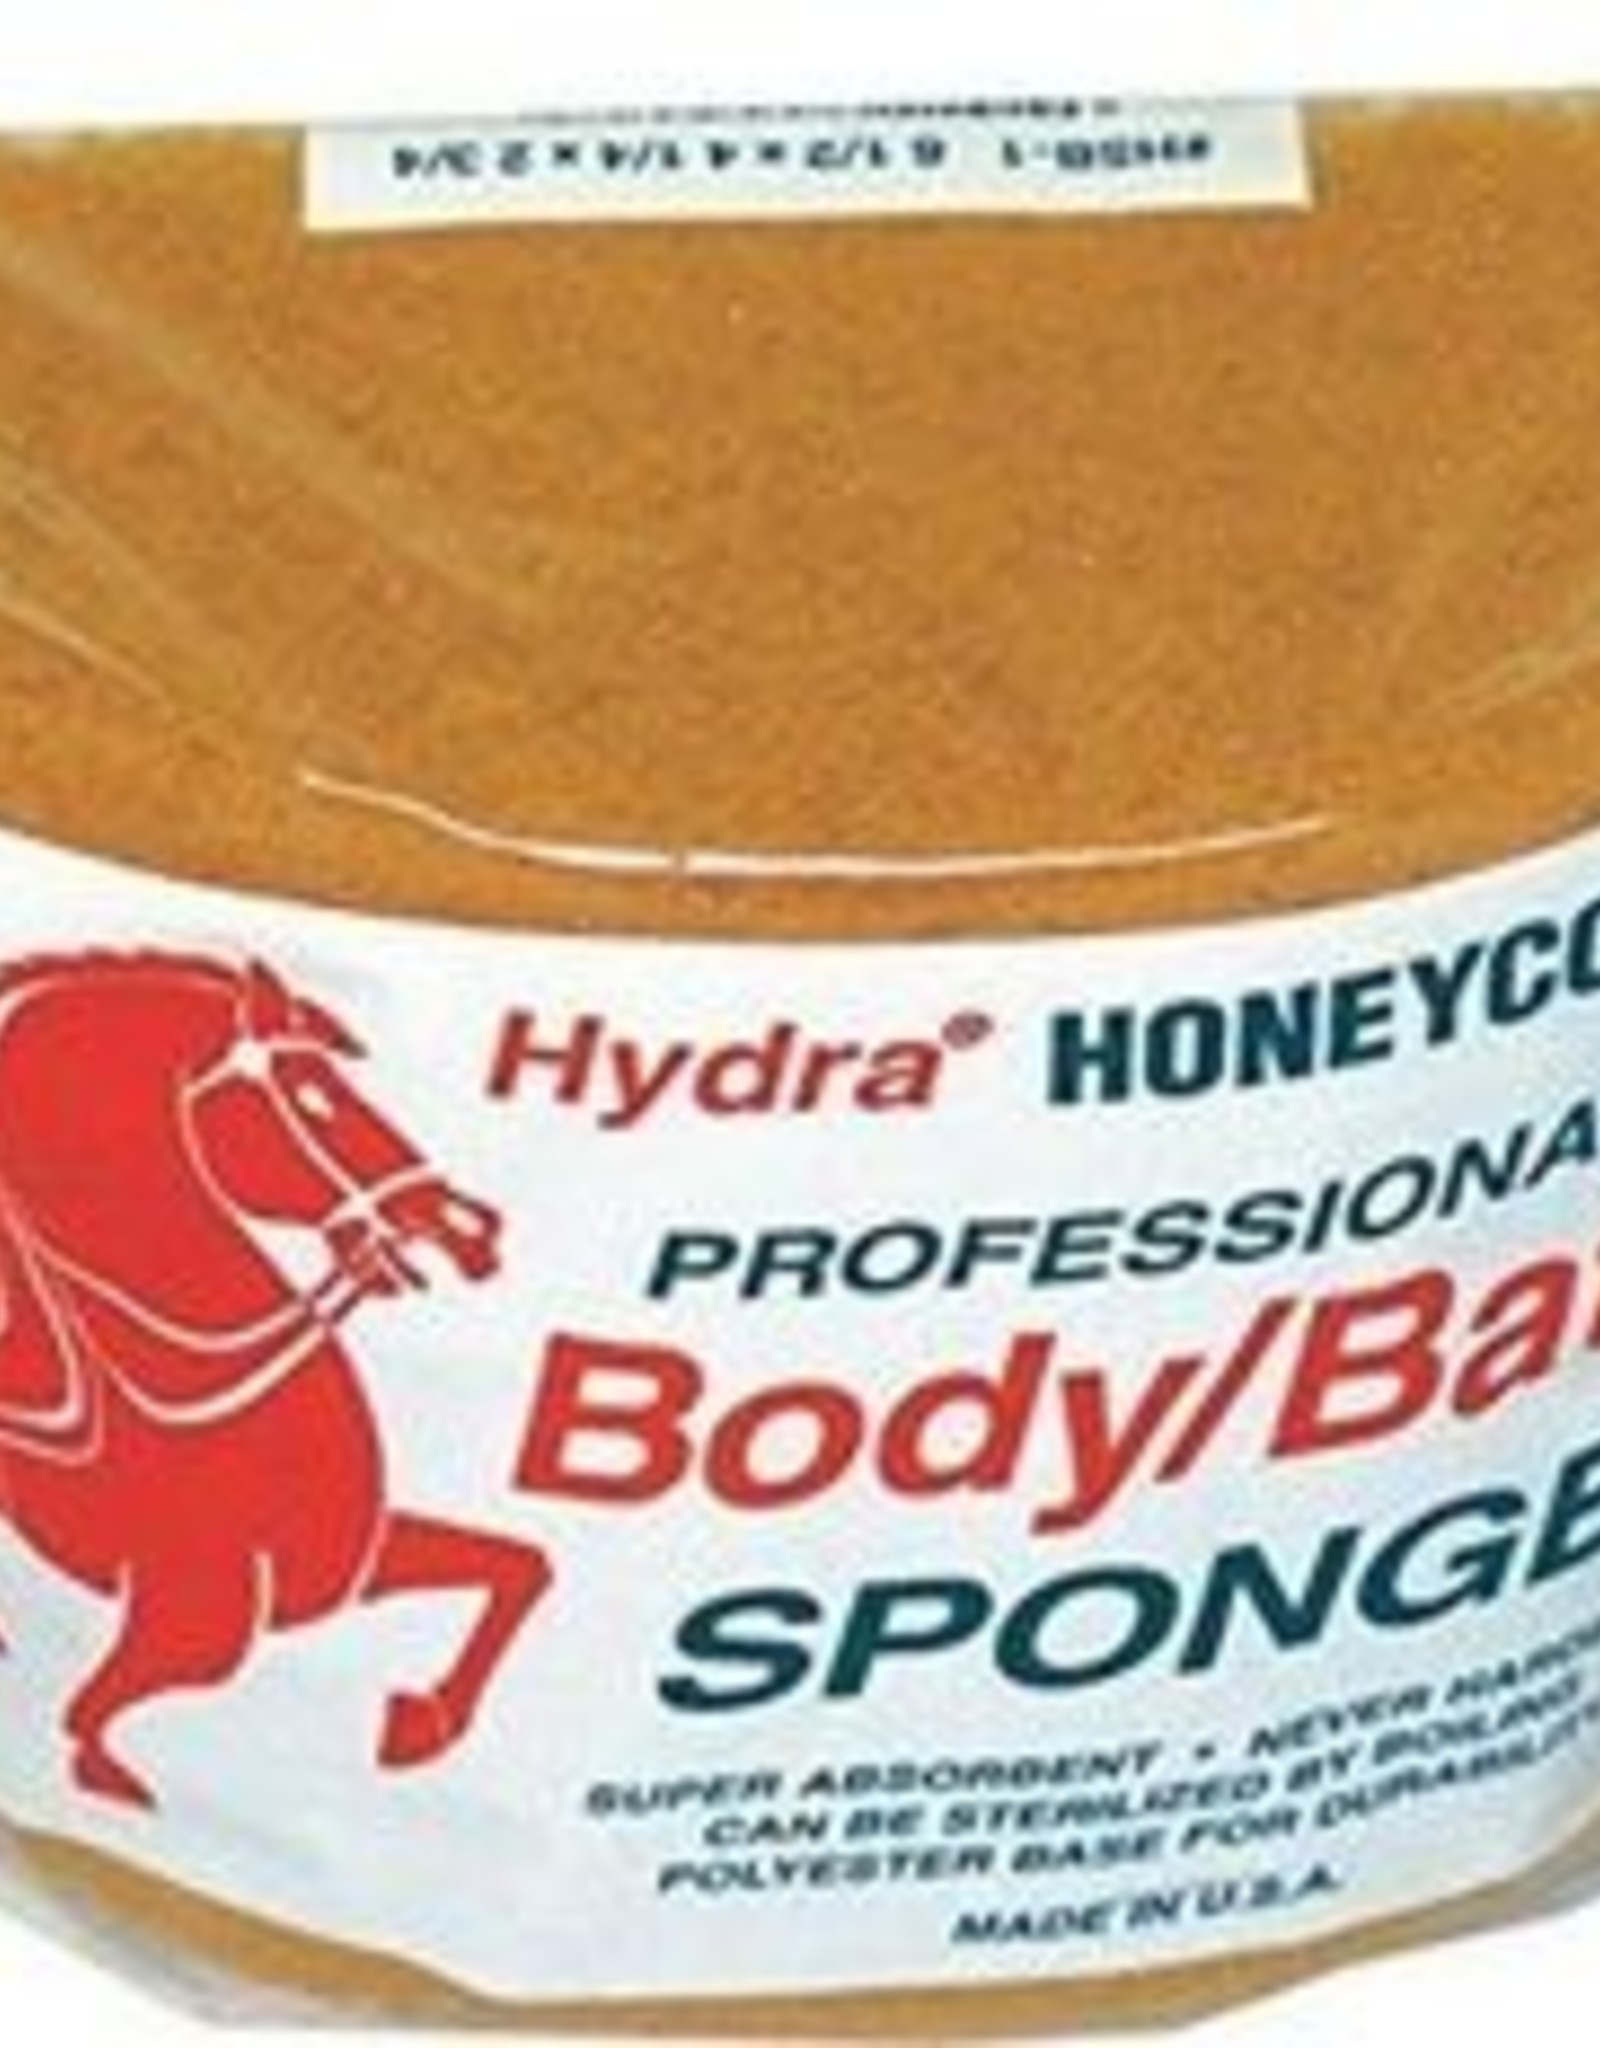 HYDRA HONEYCOMB BODY & BATH SPONGE